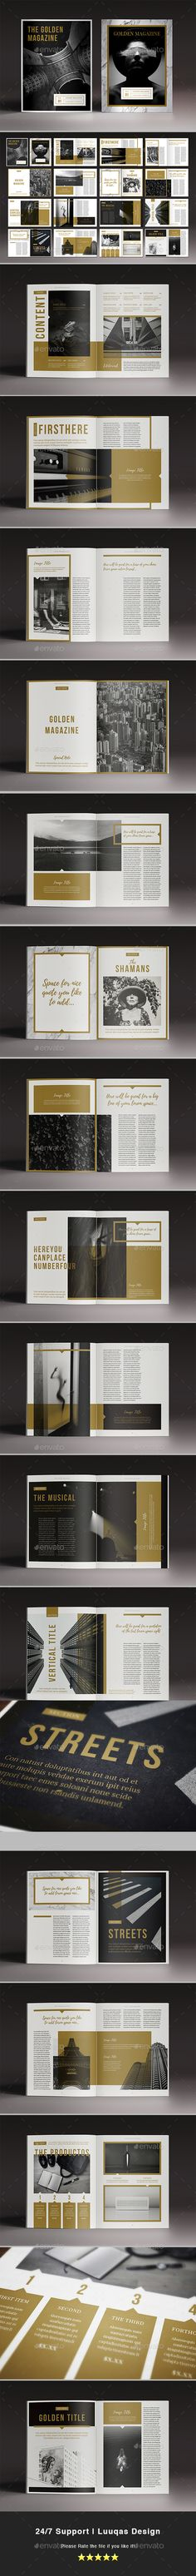 The Golden Magazine Template InDesign INDD - 32 Pages, Letter Size and A4 Size